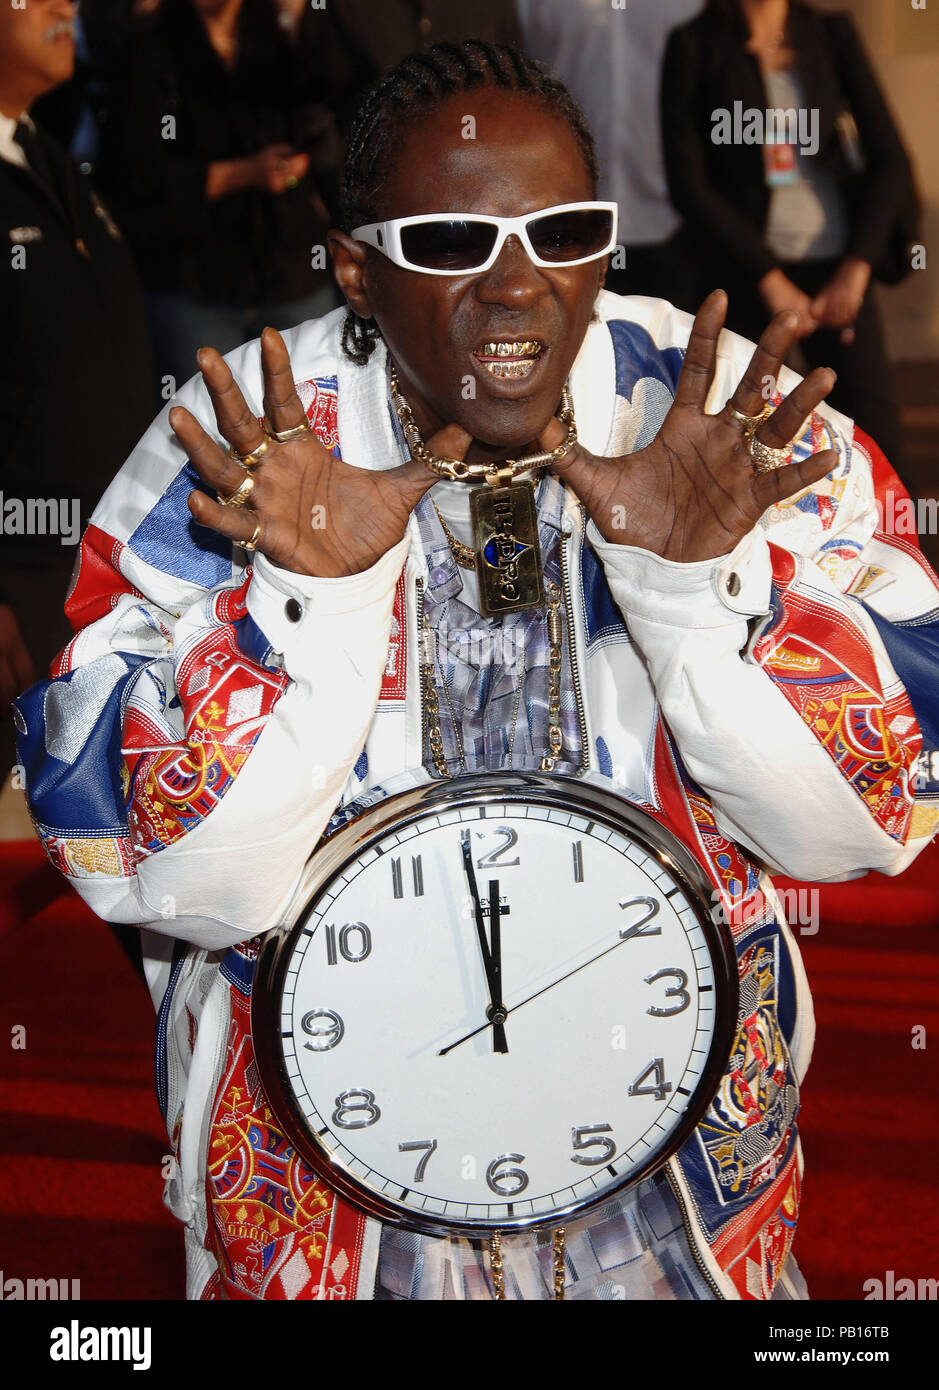 Flavor Flav High Resolution Stock Photography and Images - Alamy